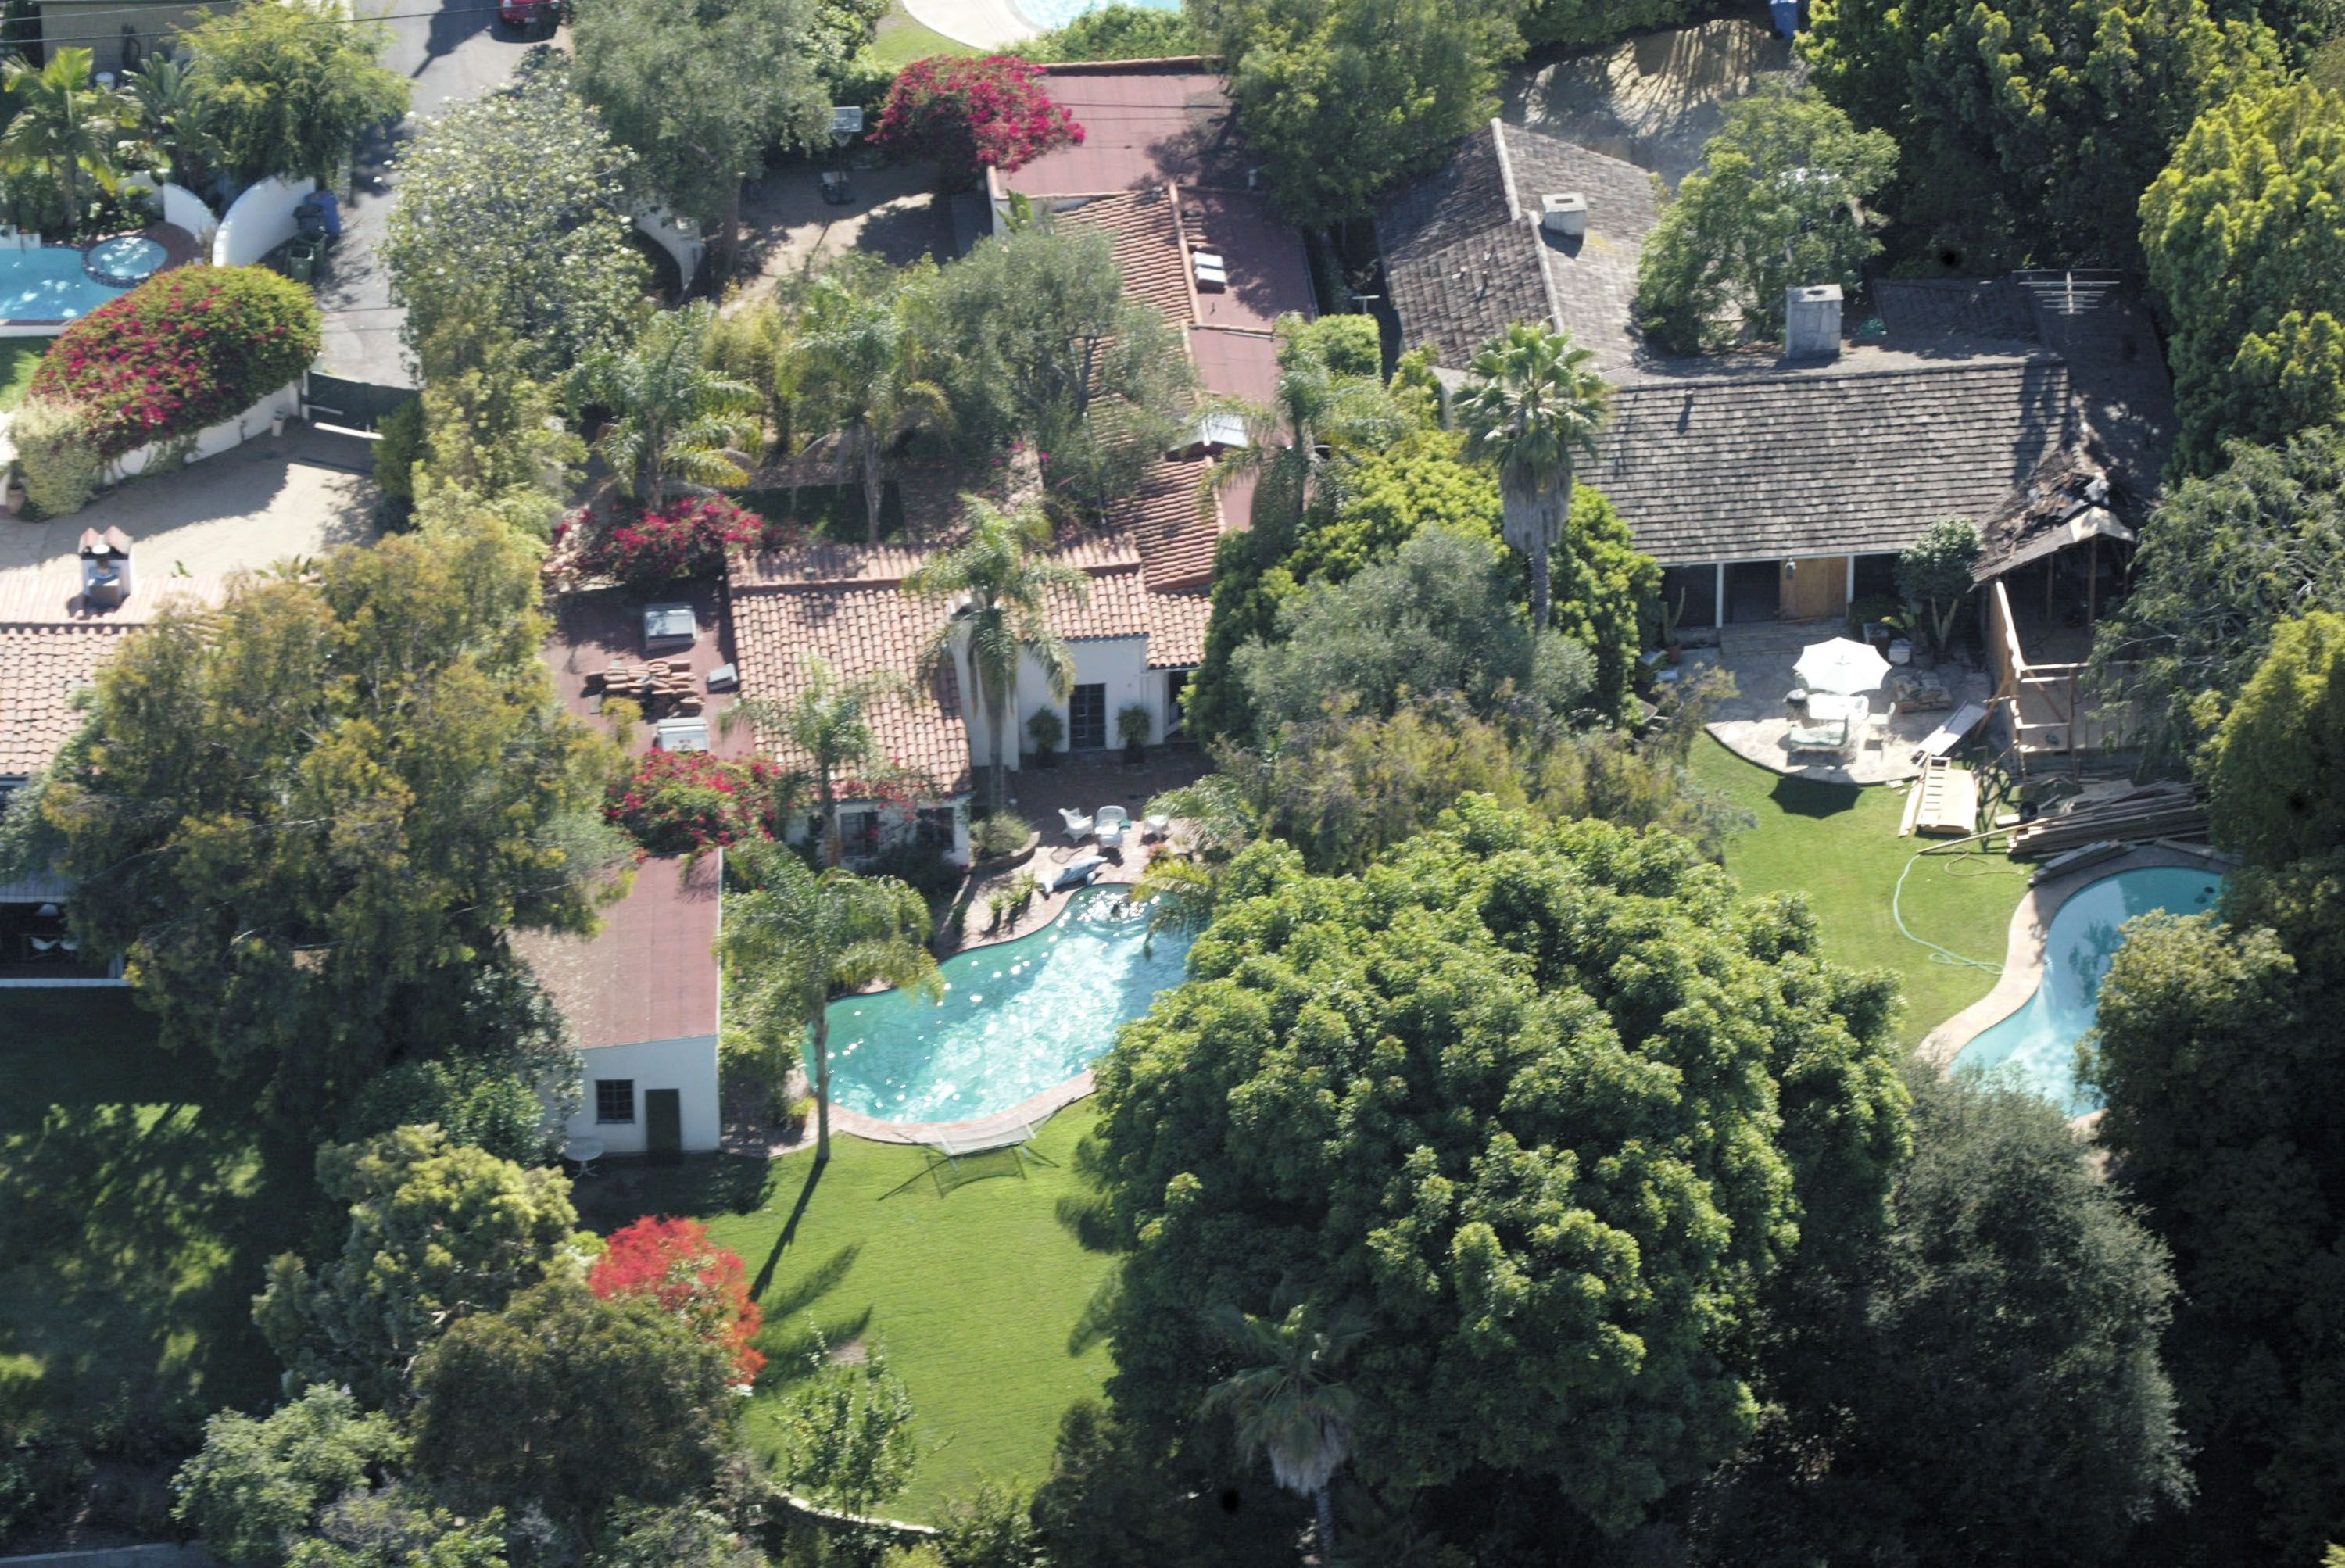 Marilyn Monroe Mansion Take A Tour Of Marilyn Monroe's Brentwood House